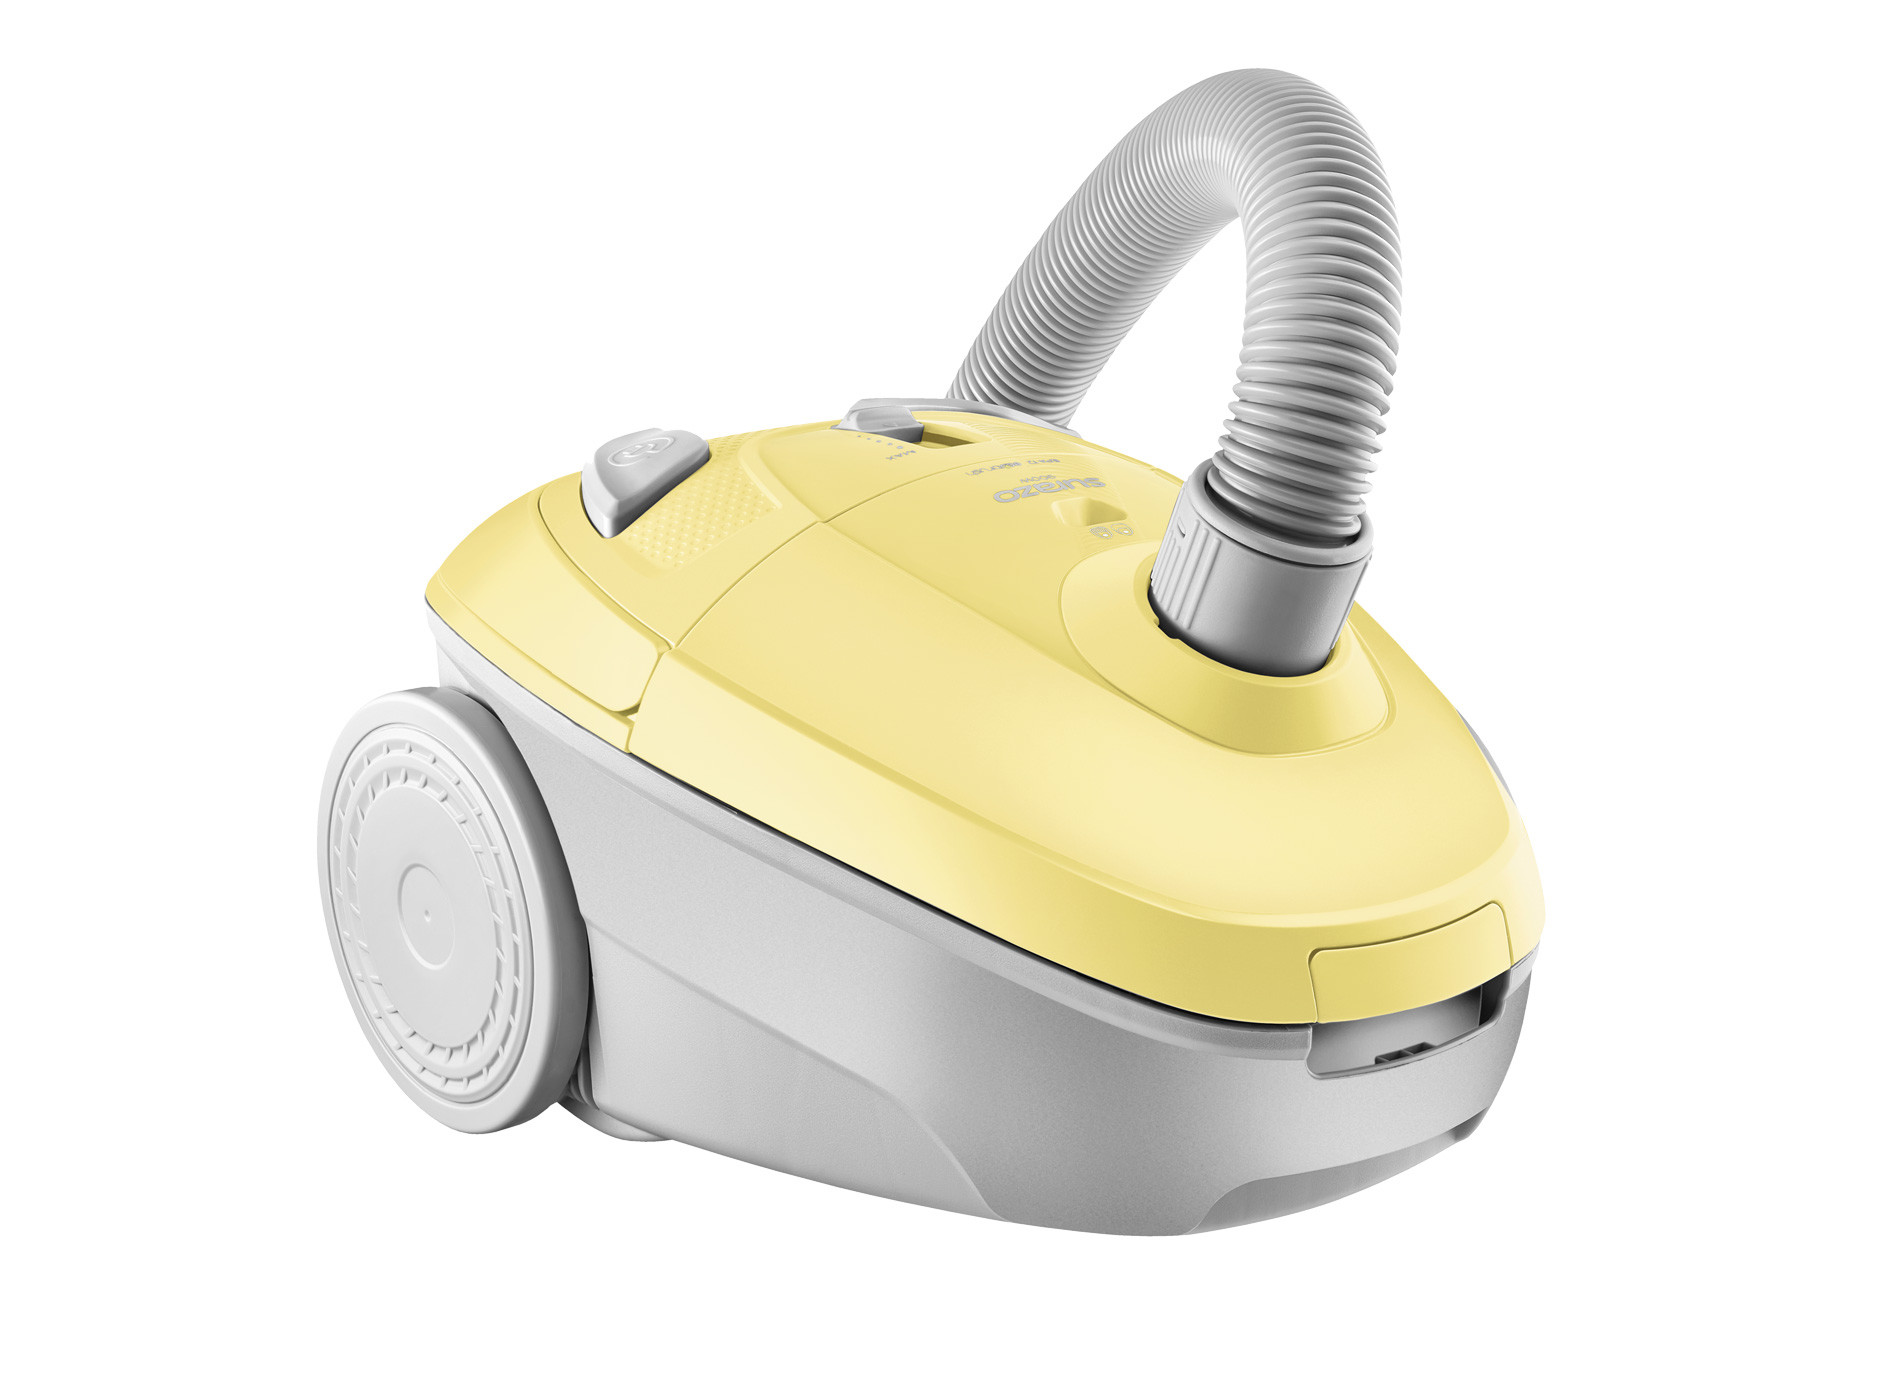 hardwood floor vacuum and steam cleaner of surazo vacuum cleaner surazo vm1056 amica intended for surazo vacuum cleaner